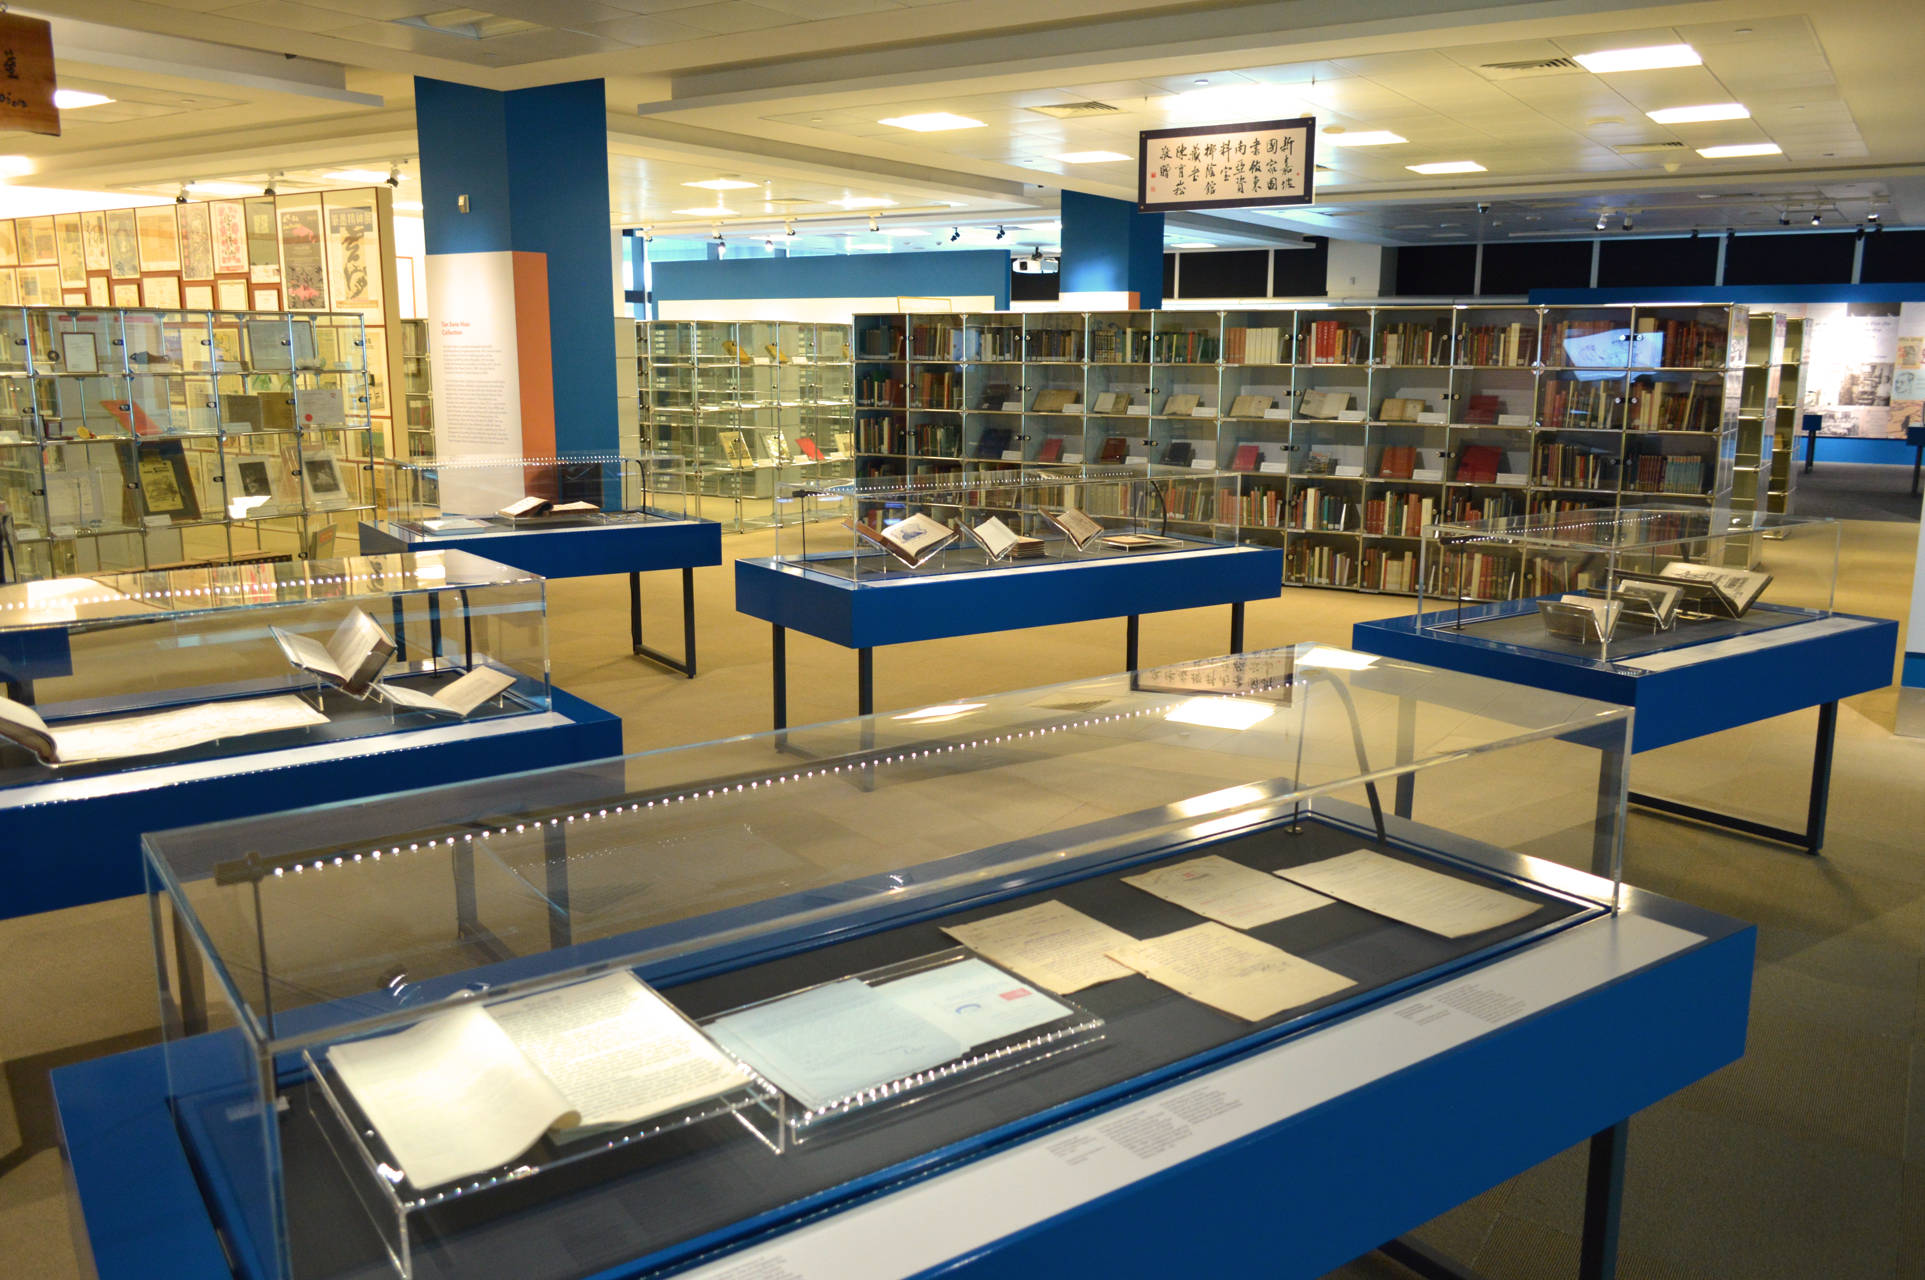 Photo overview of the National Library Donors' Gallery, with showcases in the foreground.